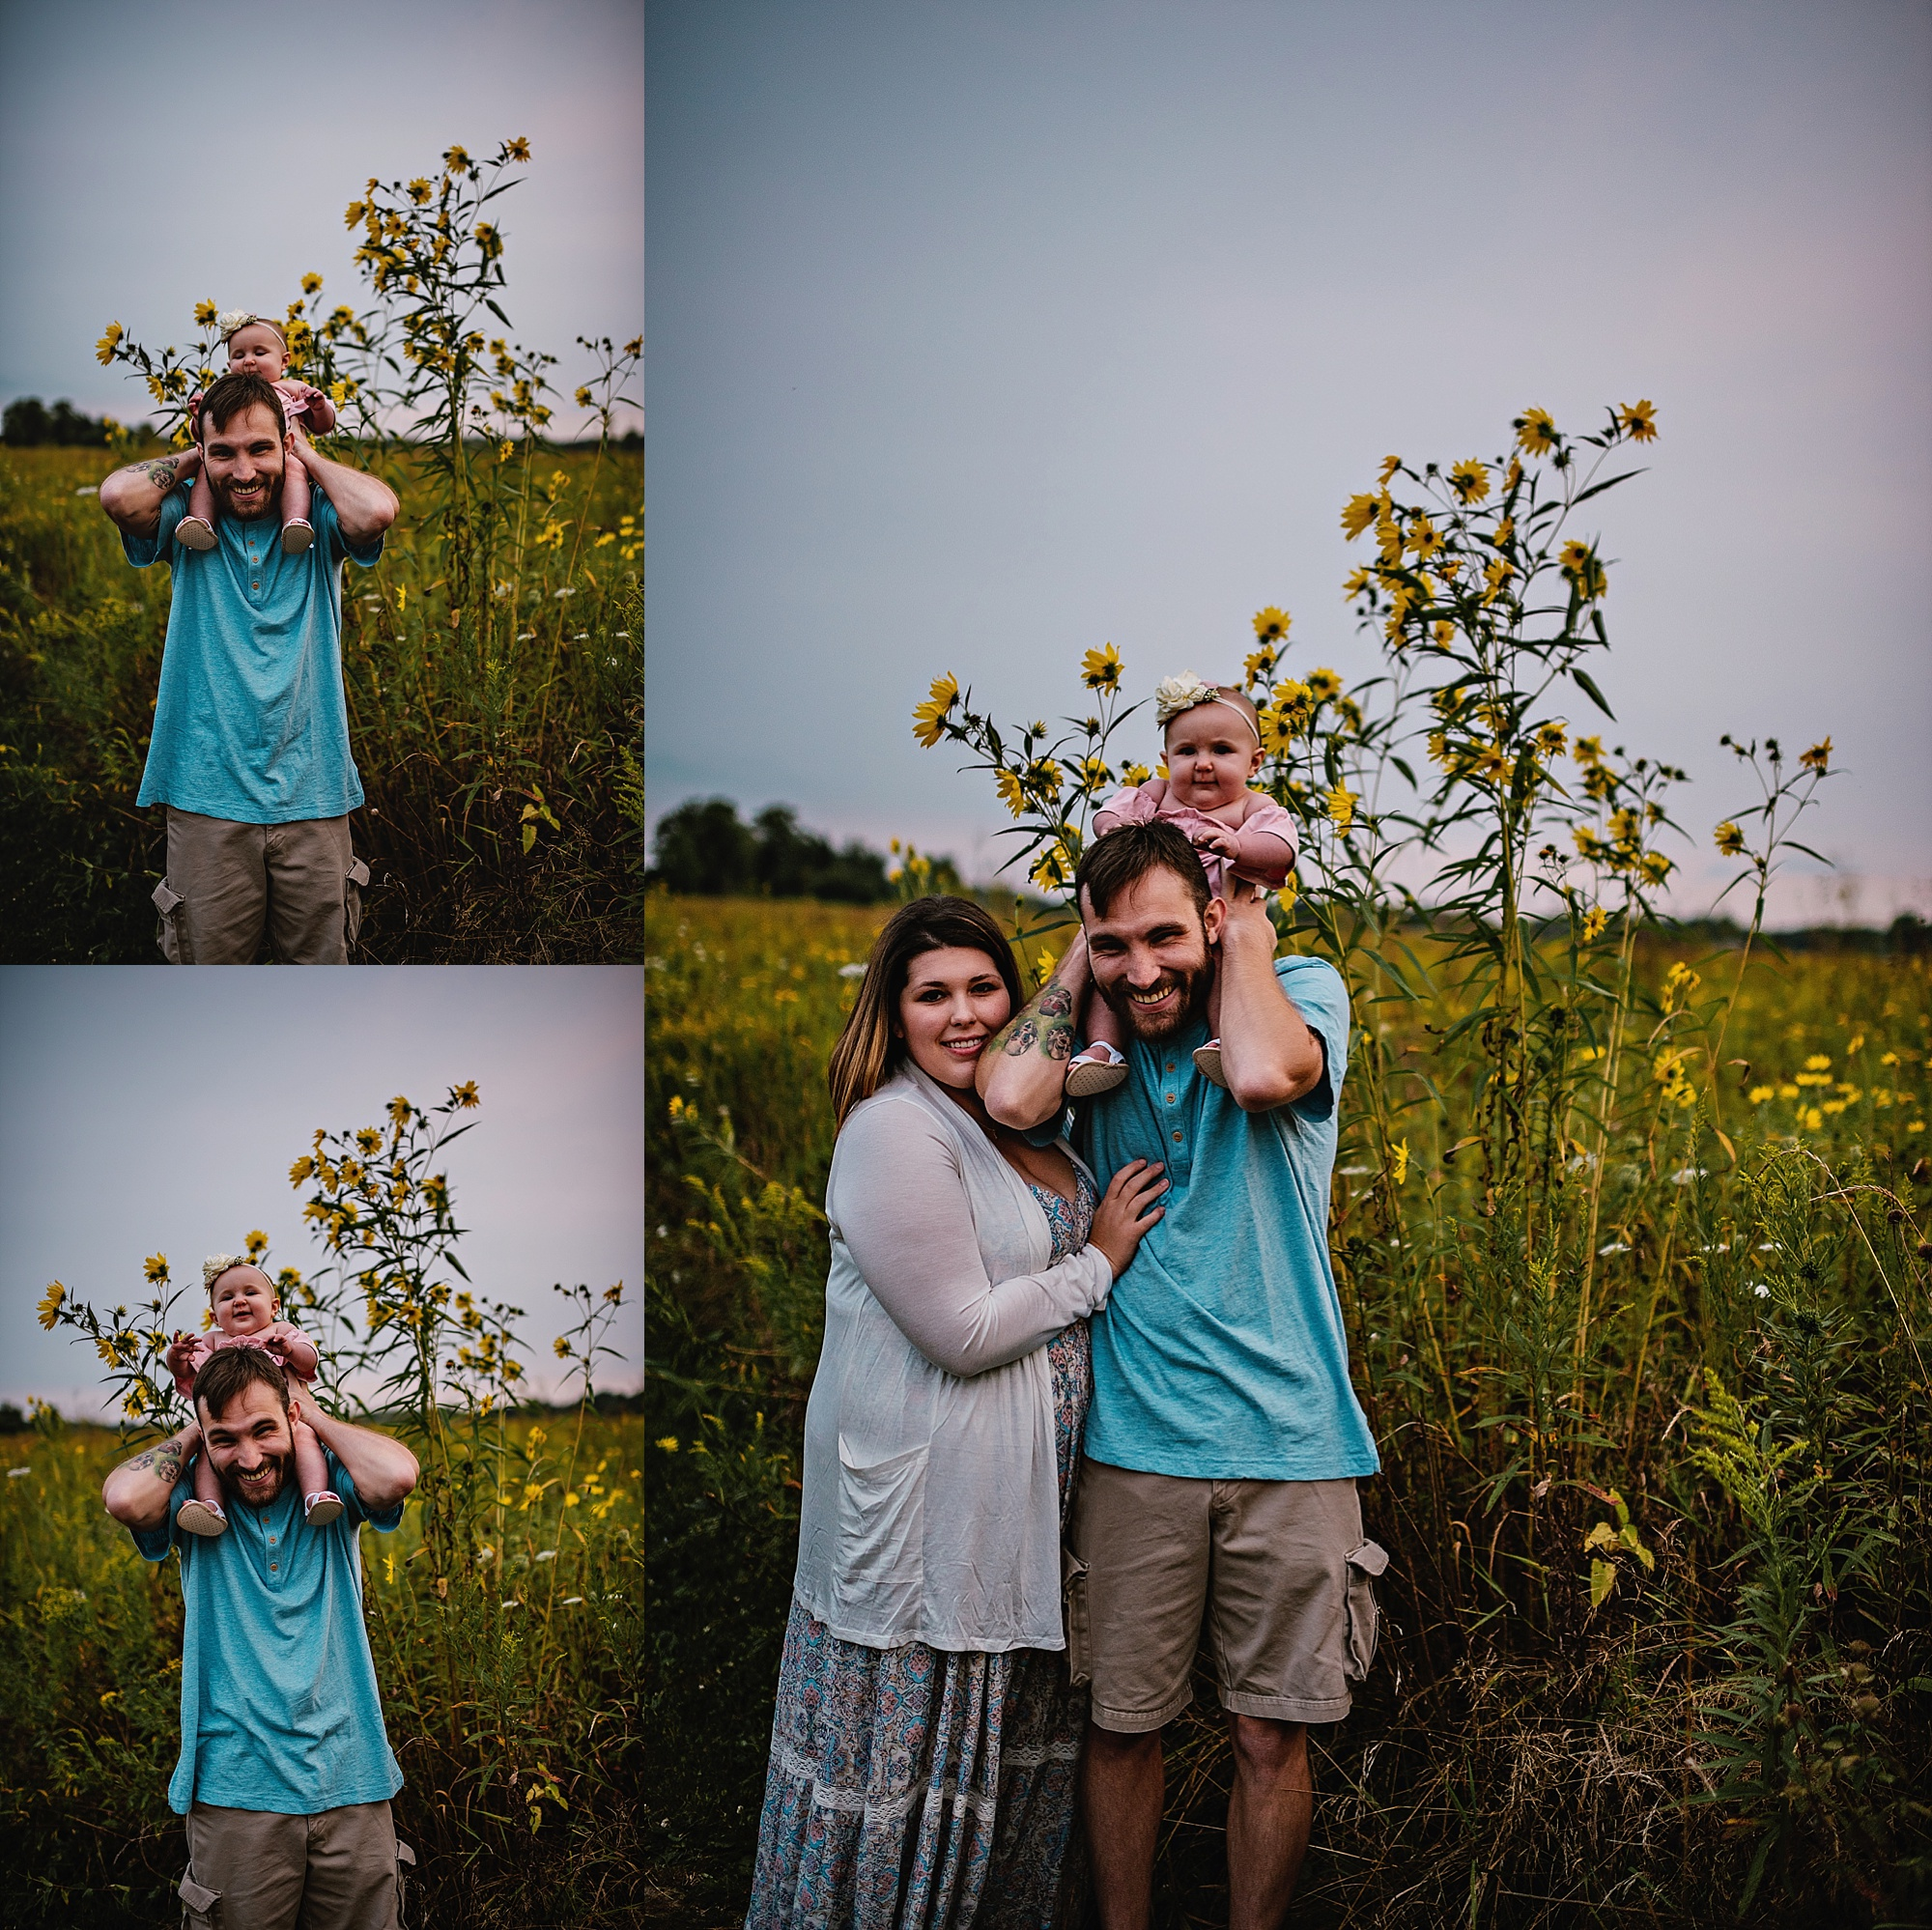 amber-lauren-grayson-photography-springfield-bog-akron-ohio-family-photographer_0018.jpg